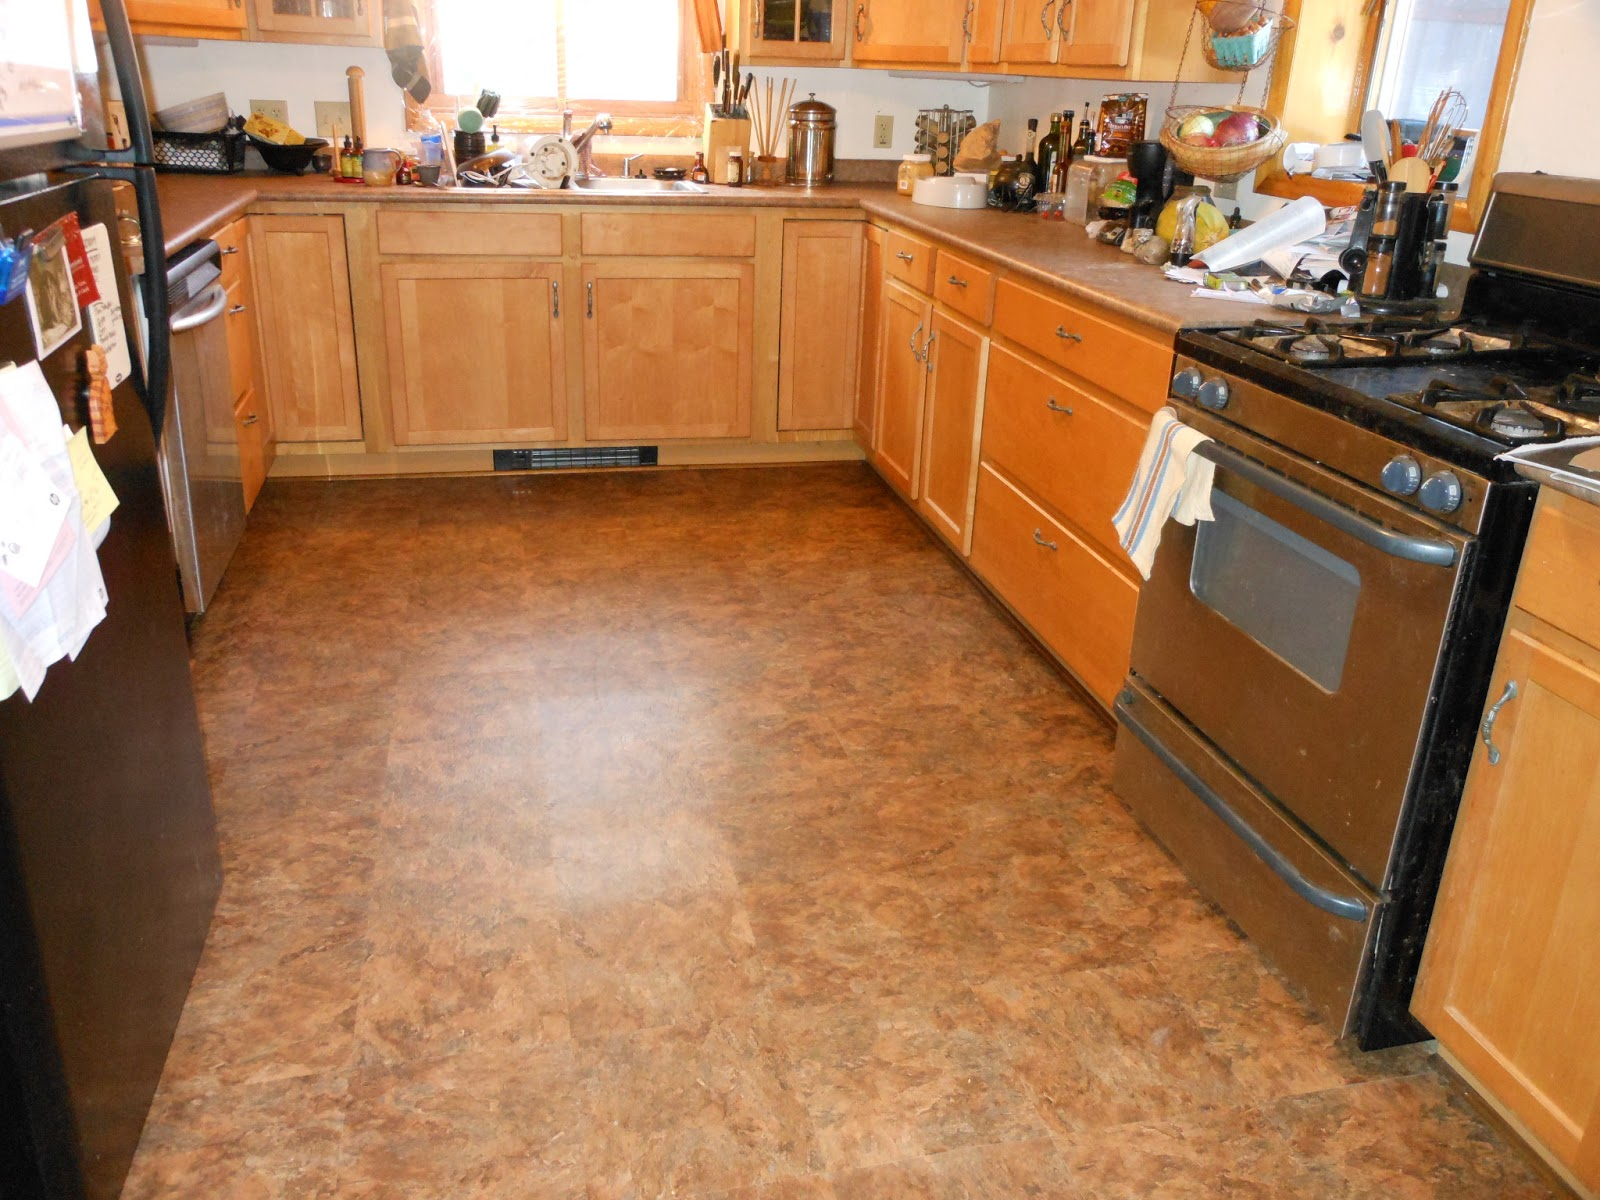 Magnificent Floor also Natural Wooden Cabinet To Decorate Narrow Kitchen